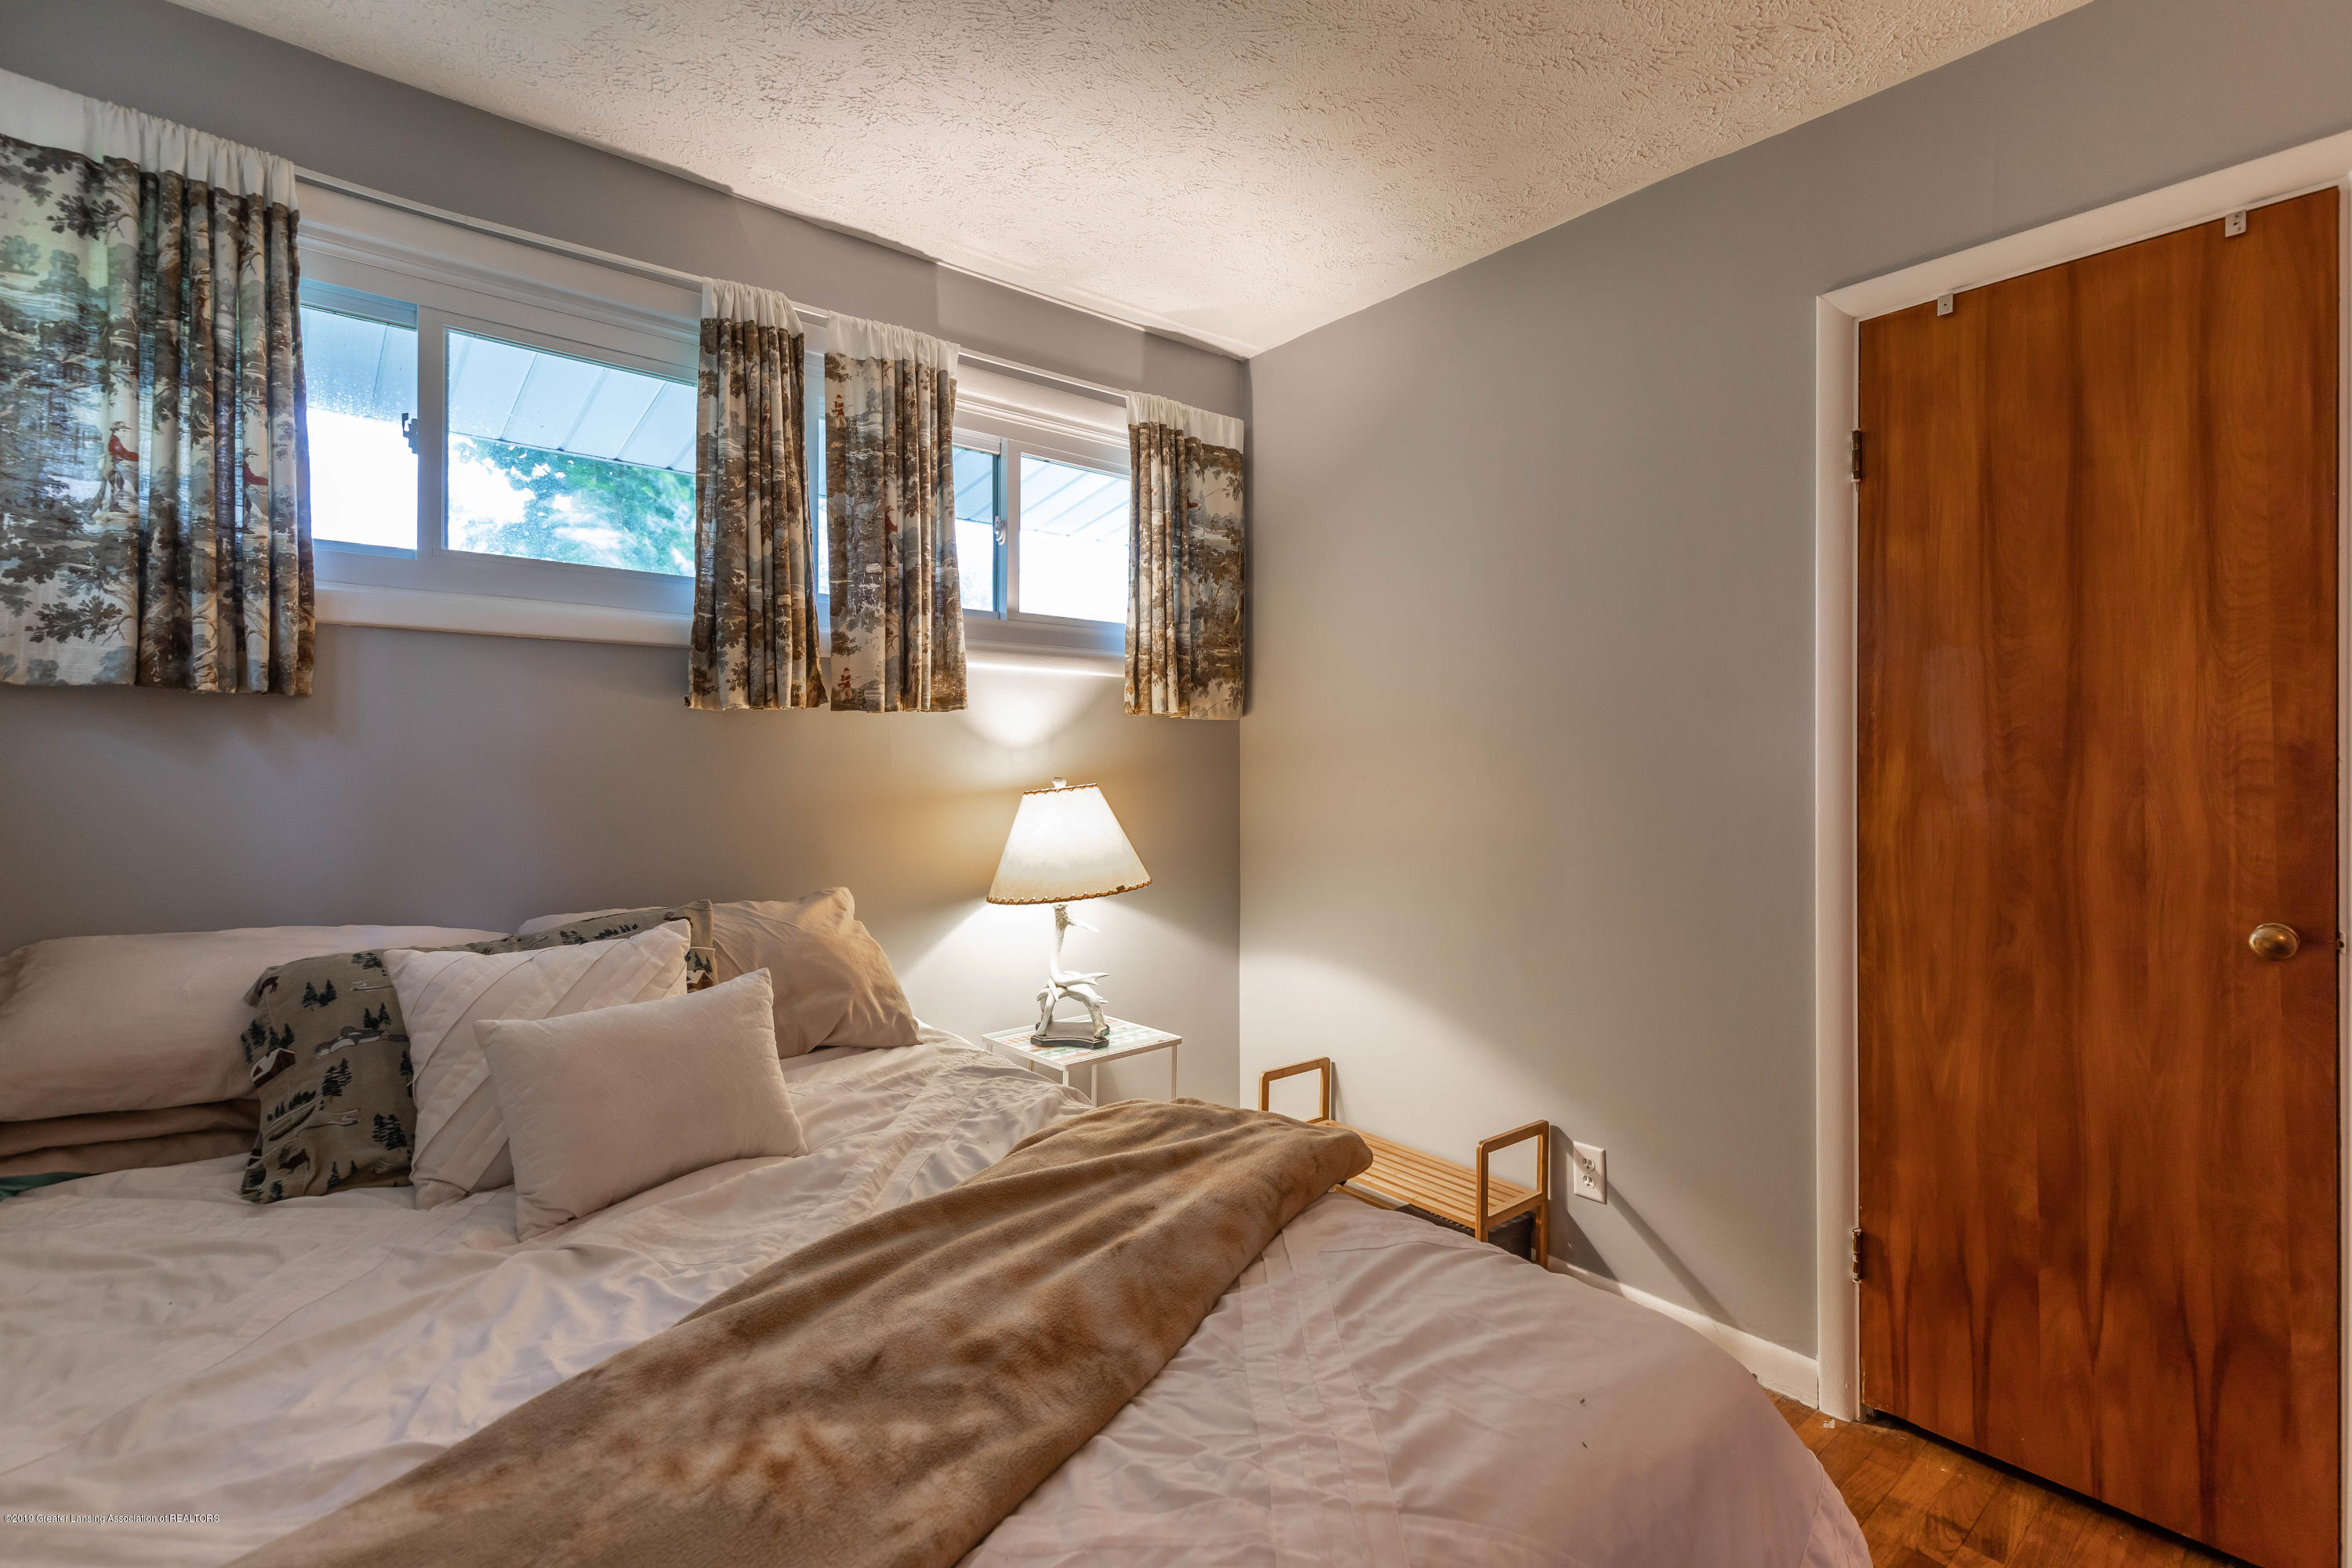 2444 W Kimmel Rd - kimmelbed21 (1 of 1) - 21